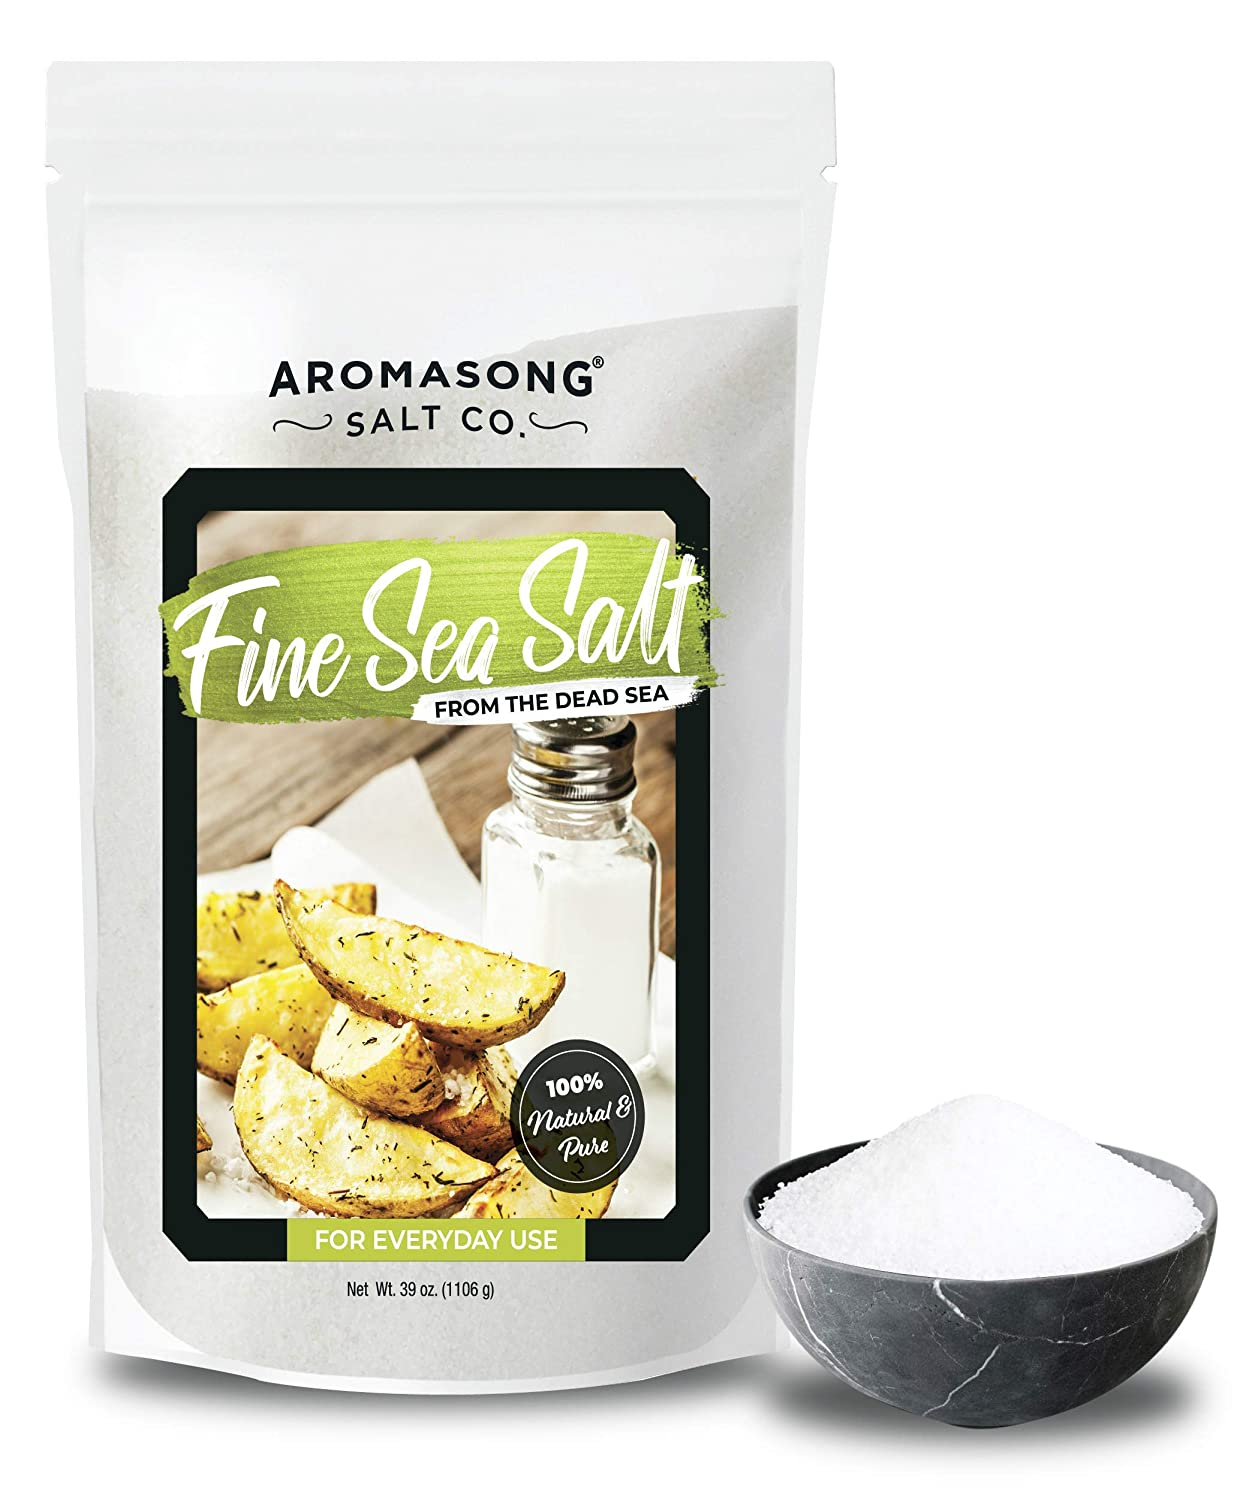 Aromasong Organic Sea Salt, - Fine Grain ( Table Salt ), Large Bulk RESEALABLE Bag of 2.43 LBS, 100% Pure & natural, Unrefined, Gluten Free, Sea Salt for Daily Cooking or to use as Pickling Salt